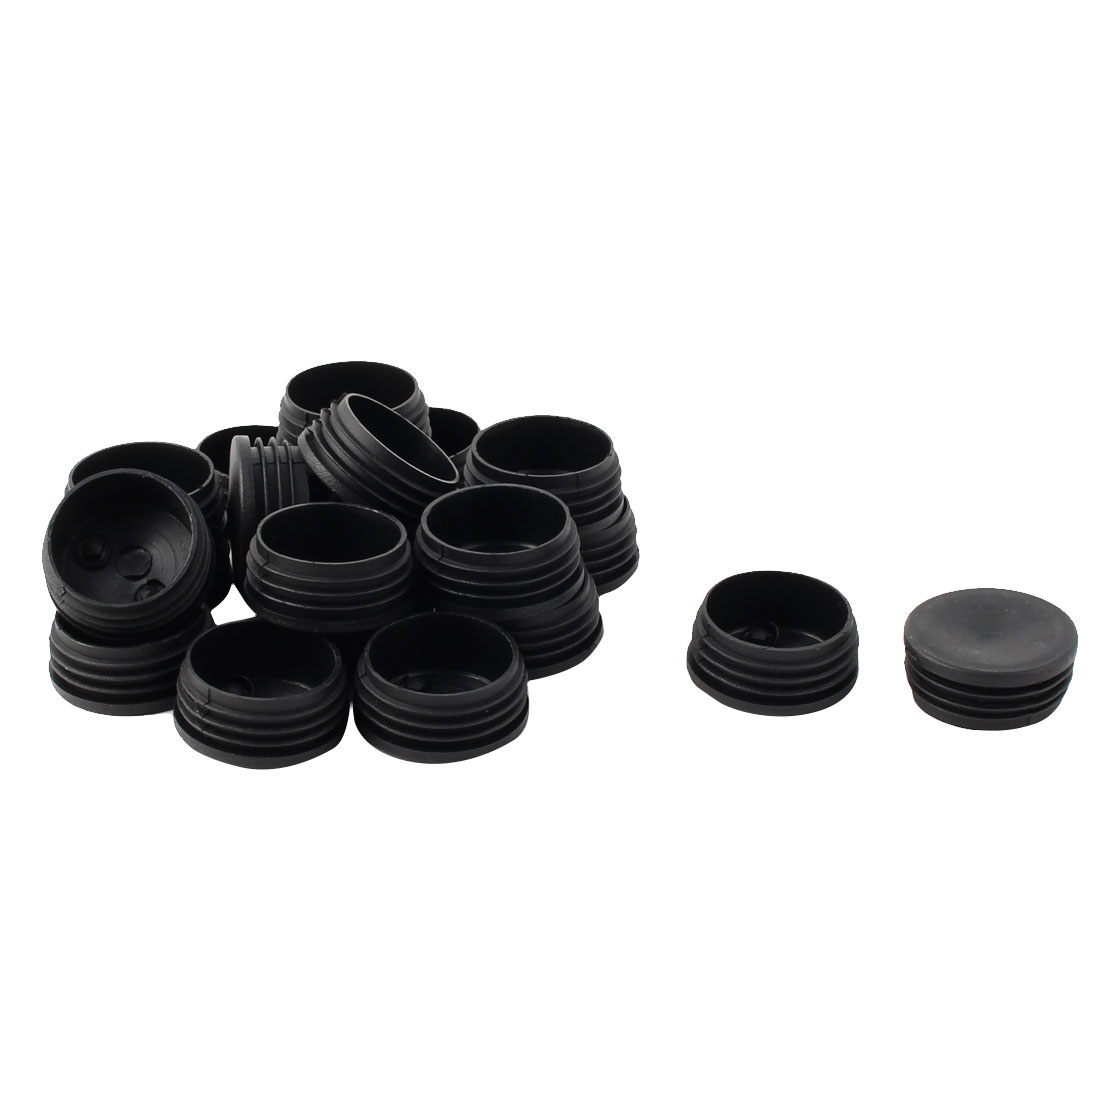 Plastic Round Tube Insert Blanking End Protectors Caps Black 45mm 20 PCS